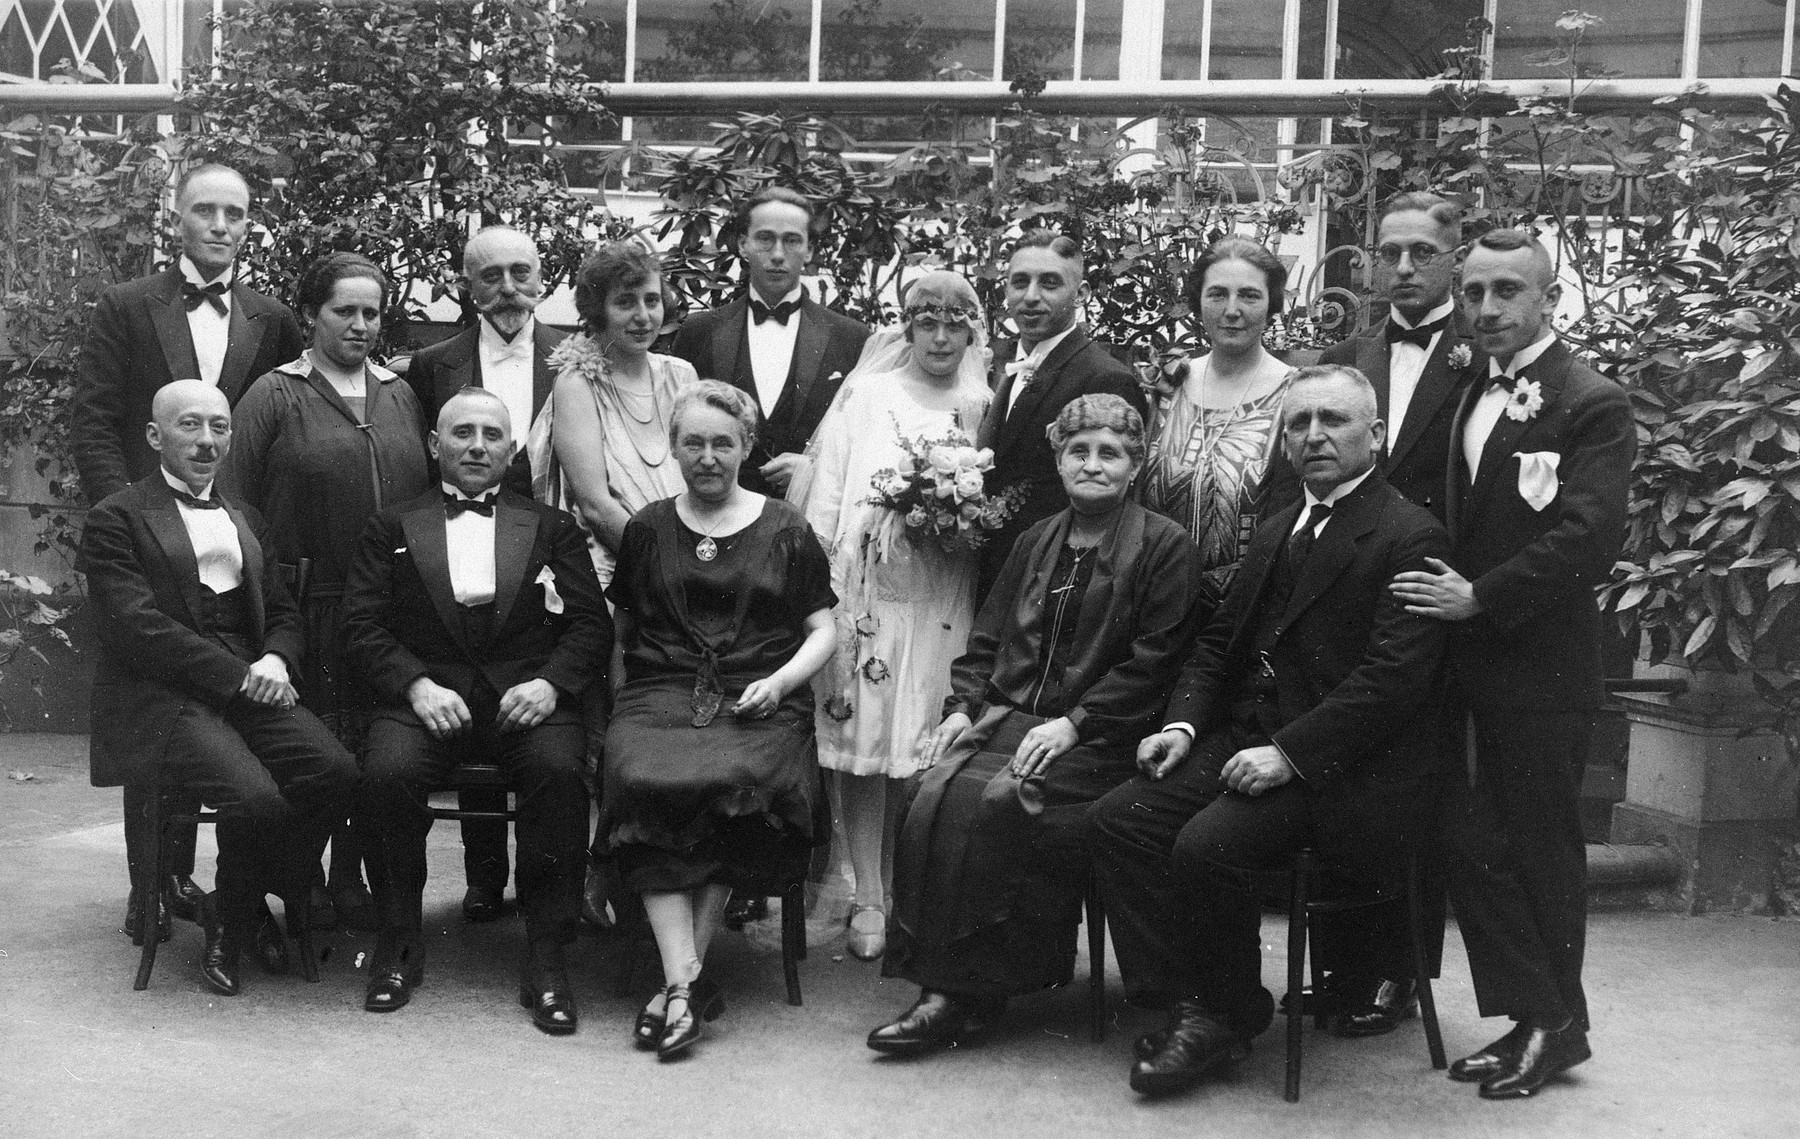 A German-Jewish family gathers for a group portrait to celebrate the wedding of Hugo Pauly and Selma Herz.  Seated from left to right are Selma Herz's uncle, Solomon Kahn, Hugo Pauly's aunt (and the wife of Leopold Herz), Babette Herz Pauly (Hugo's mother), and Louis Herz.  Standing left to right: unidentified, Dora Pauly (Hugo's sister), Leopold Herz, an unidentified couple, Selma Herz, Hugo Pauly, Rose Kahn (Selma's older sister), Theodore Pauly (Hugo's oldest brother) and Alfred Herz.